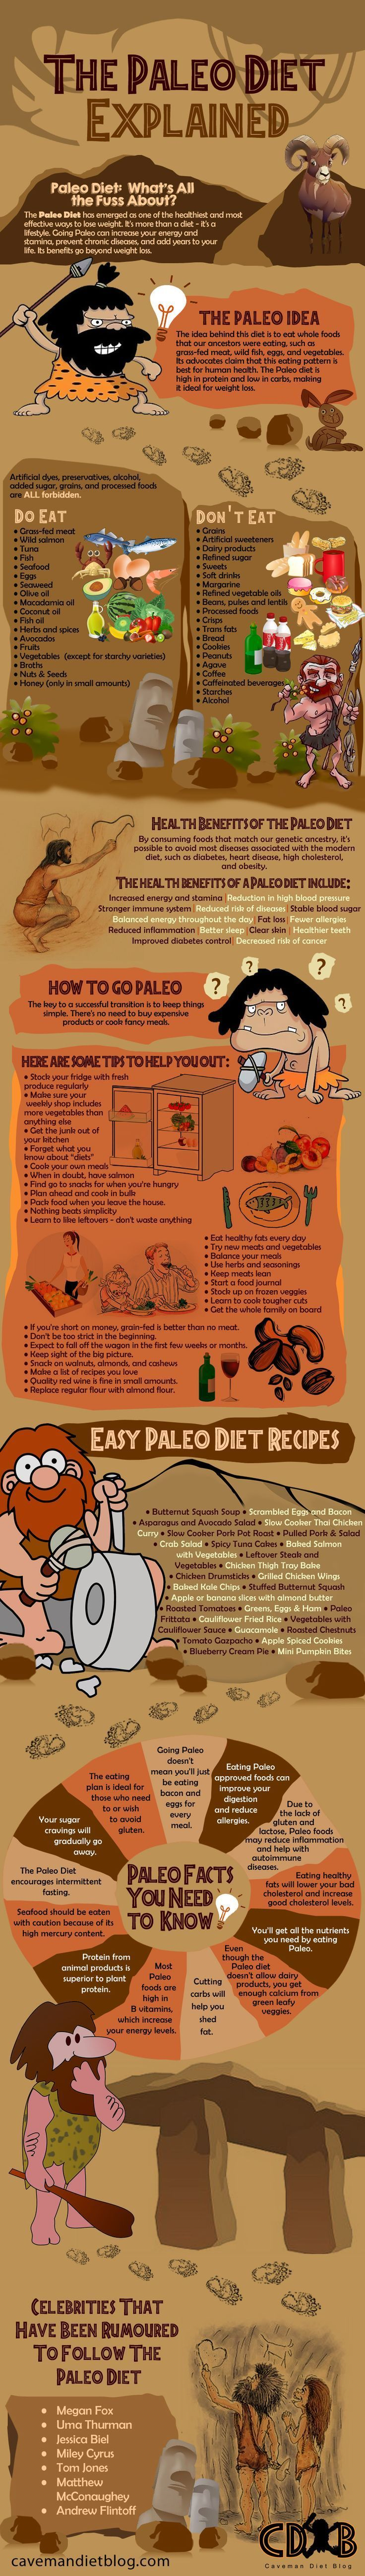 the best way to lose weight, extreme weight loss pills, weight loss support - I've been detoxing and so far I've lost 4 pounds, 16 more to go and after my juice detox I'm going Paleo since it's the easiest since I love meat and veggies. | https://lomejordelaweb.es/